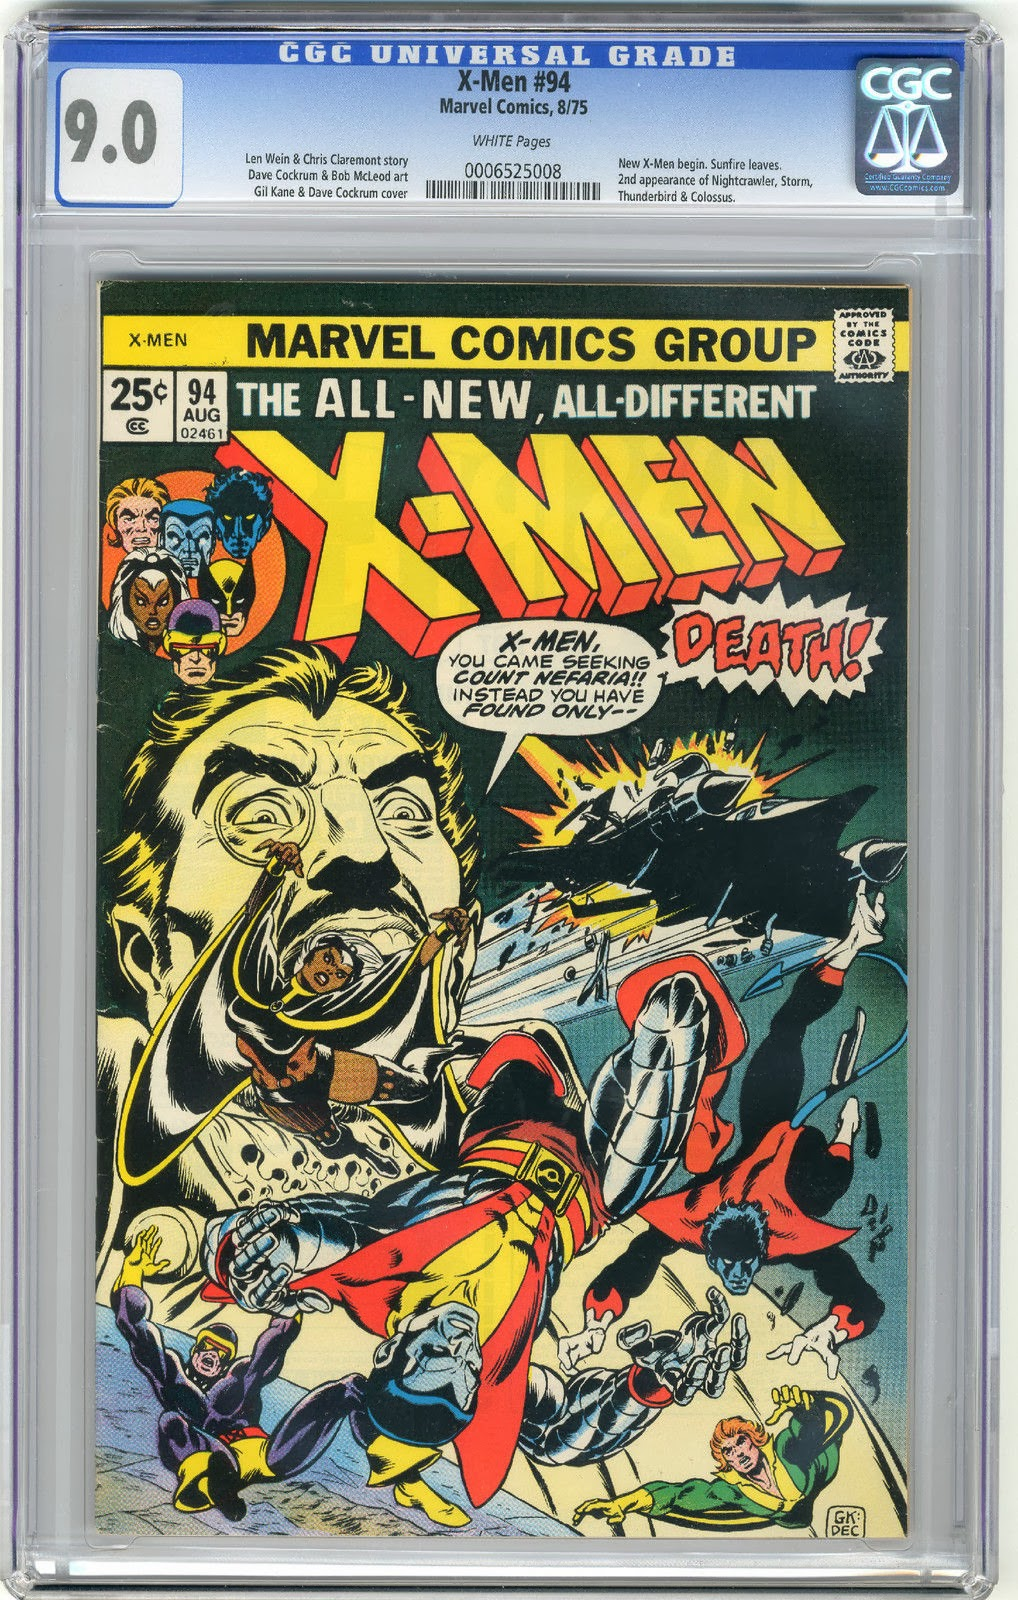 http://www.totalcomicmayhem.com/2014/03/color-of-pages-concerning-graded-comics.html